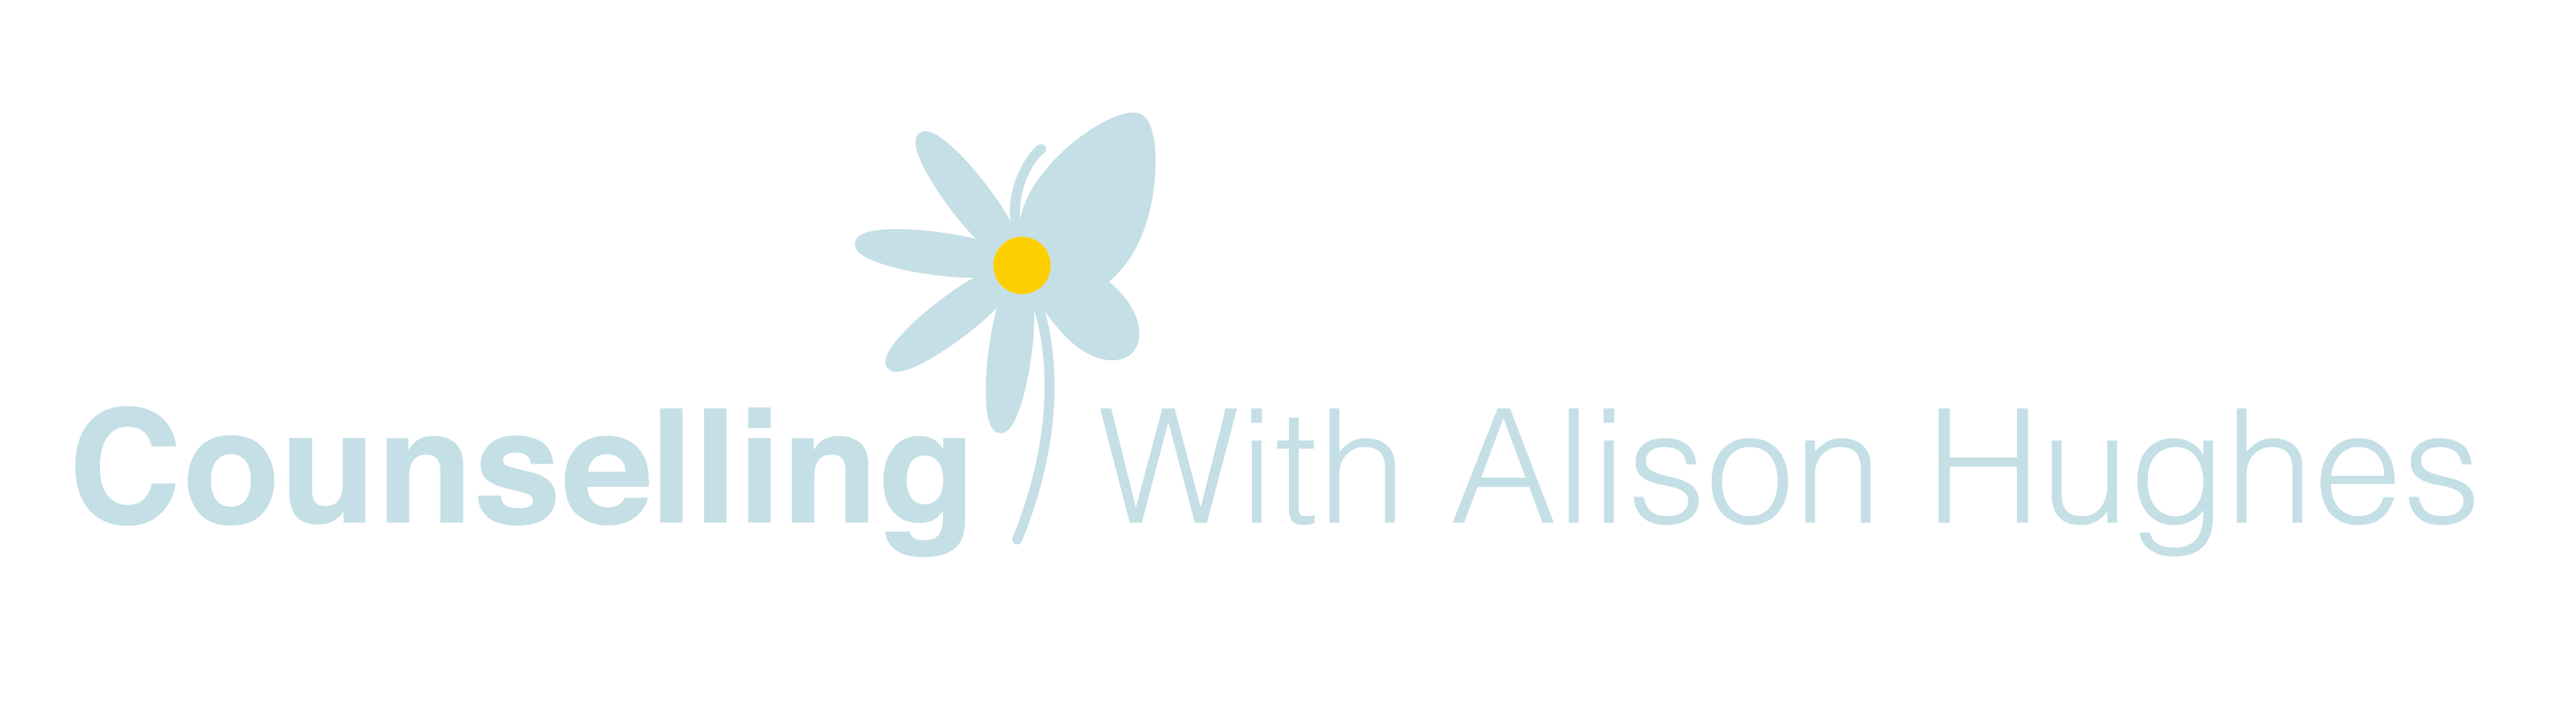 counselling-with-alison